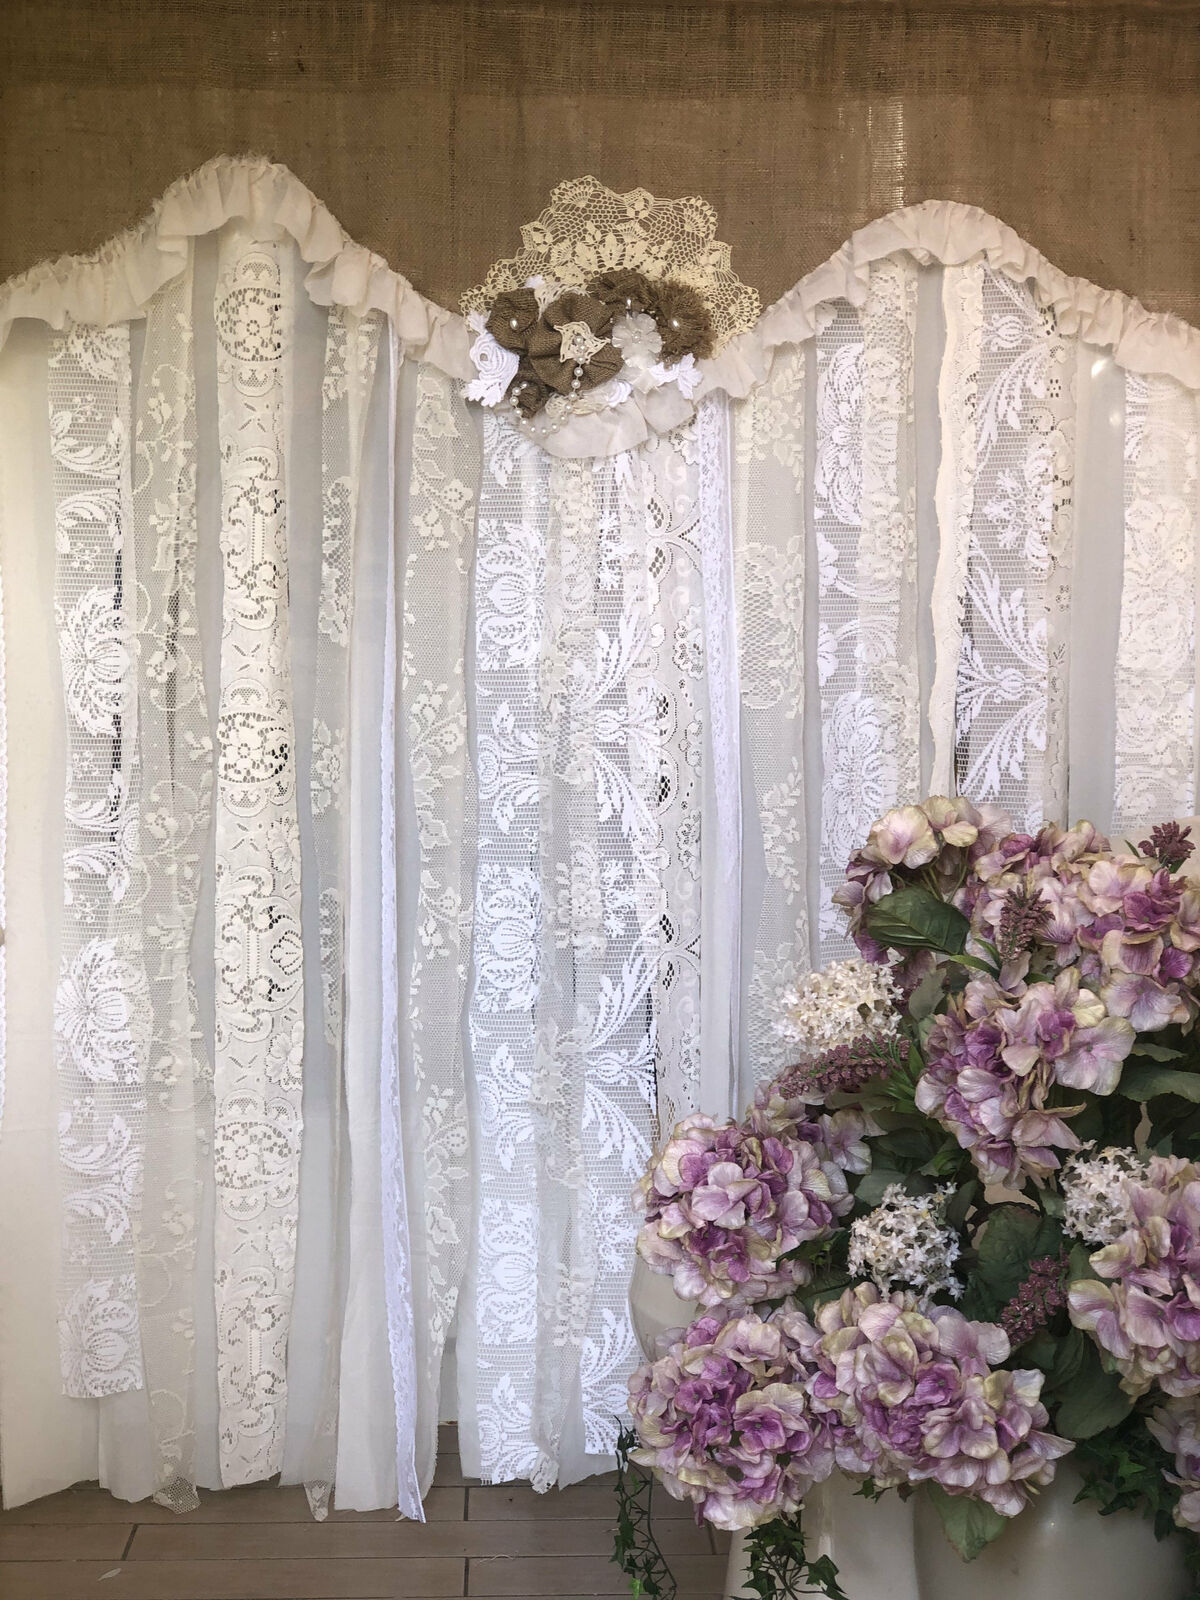 Boho Shower Curtain Crochet Shabby Rustic Chic Burlap Lace Ruffles French White For Sale Online Ebay